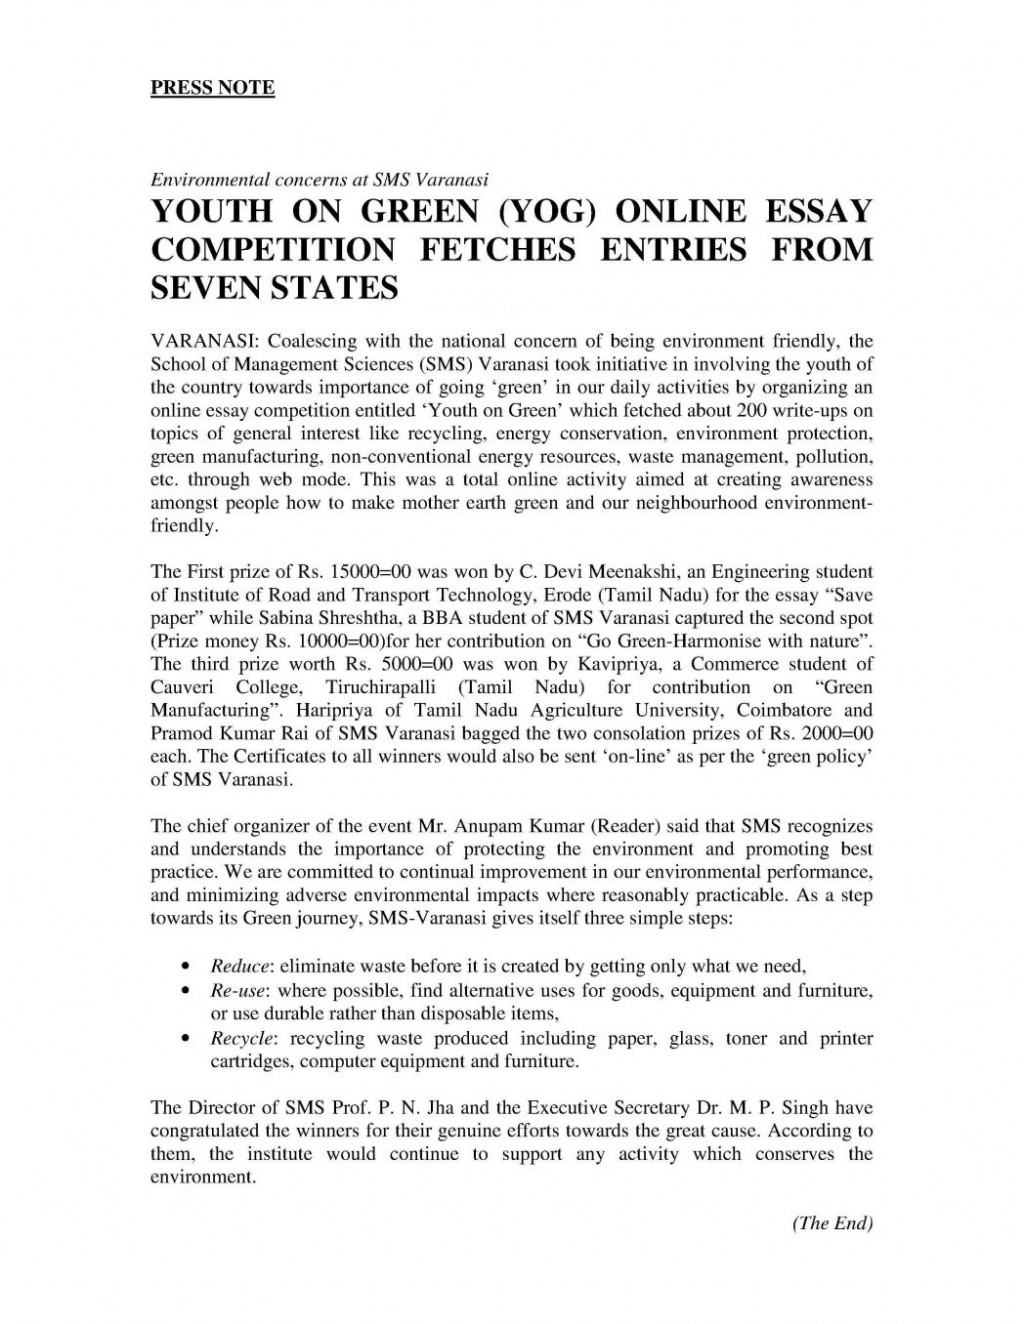 020 Best Essays For College Essay On Good Habits How Tot Application Online Yog Press Re About Yourself Examples Your Background Failure Prompt Off Hook 1048x1356 Example Amazing To Start An Argumentative A Book With Definition Life Large